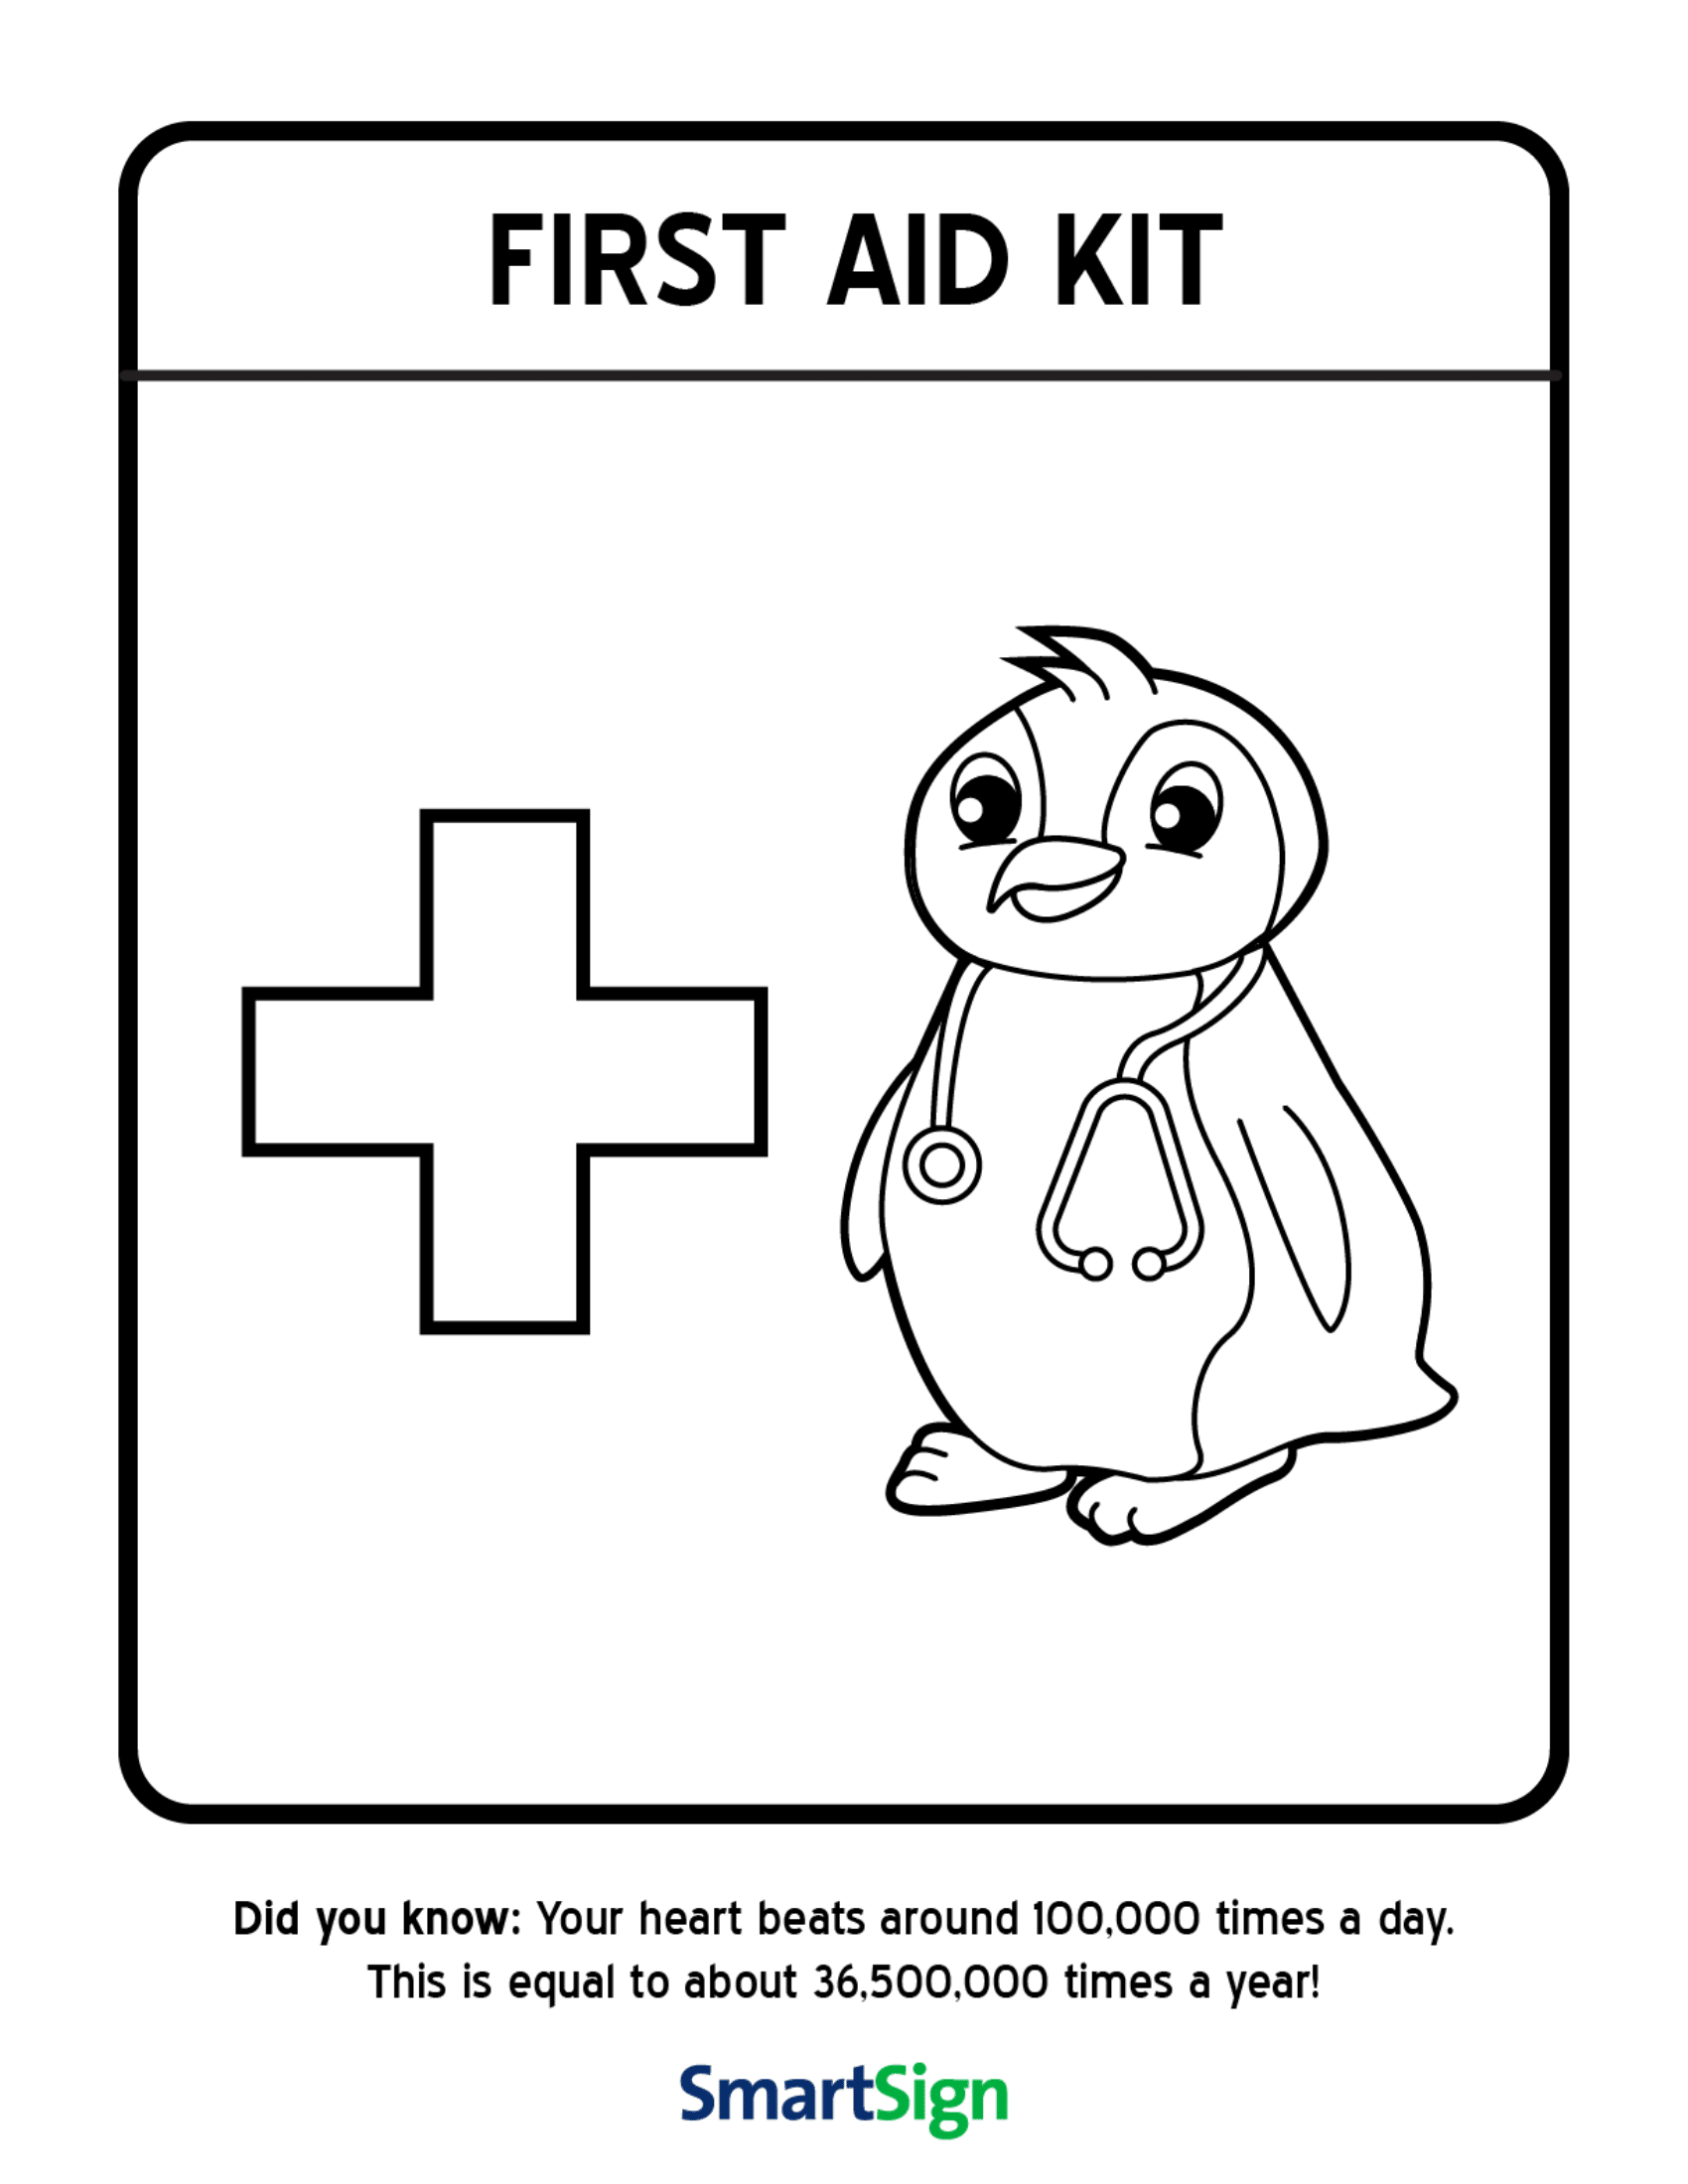 Safety Coloring Printable For Kids First Aid Kit